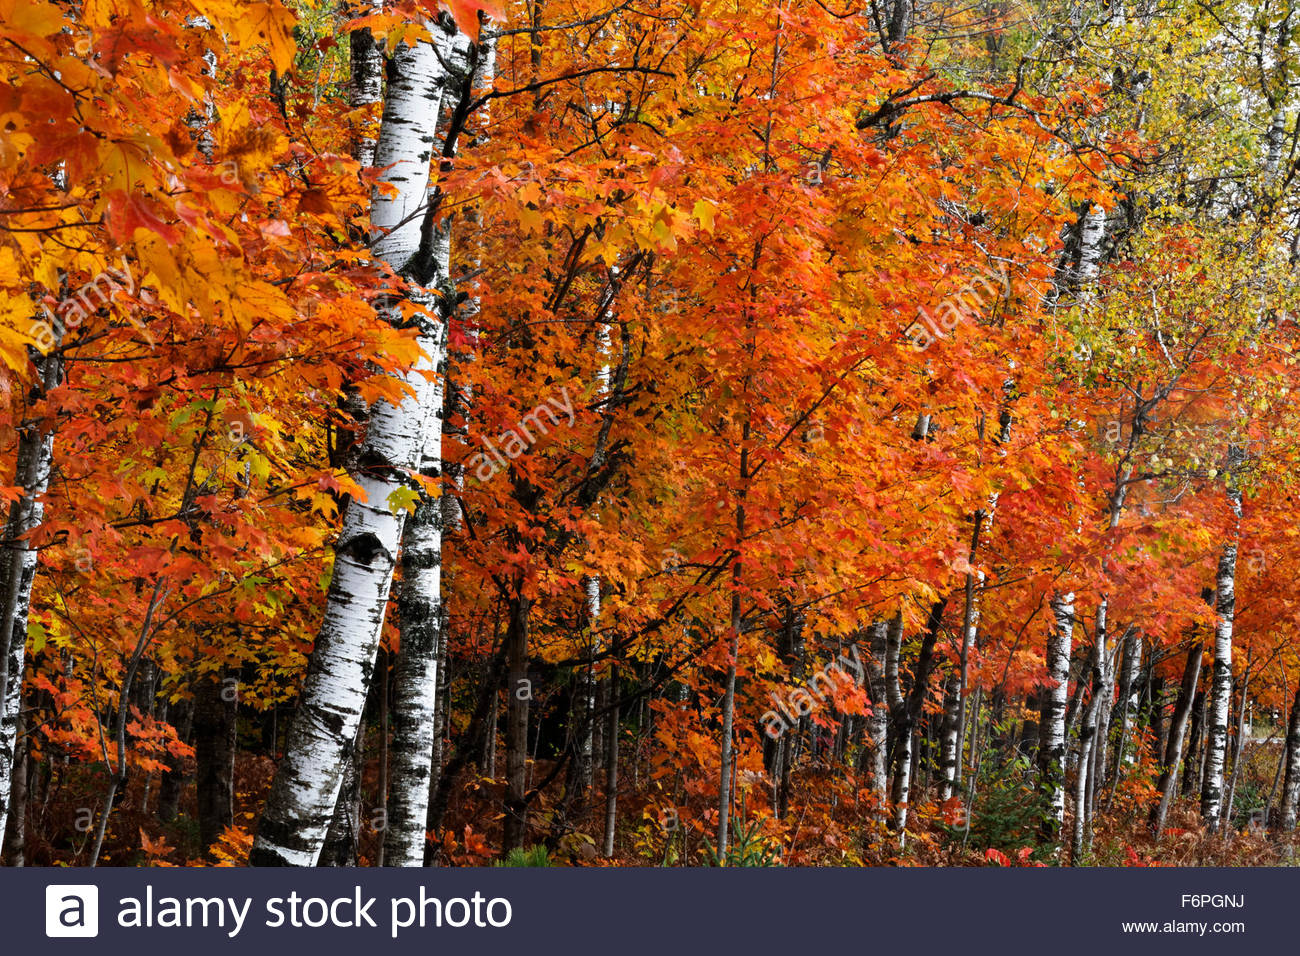 Autumn Fall Live Wallpaper Suger Maple Leaves And White Birch Tree In Autumn